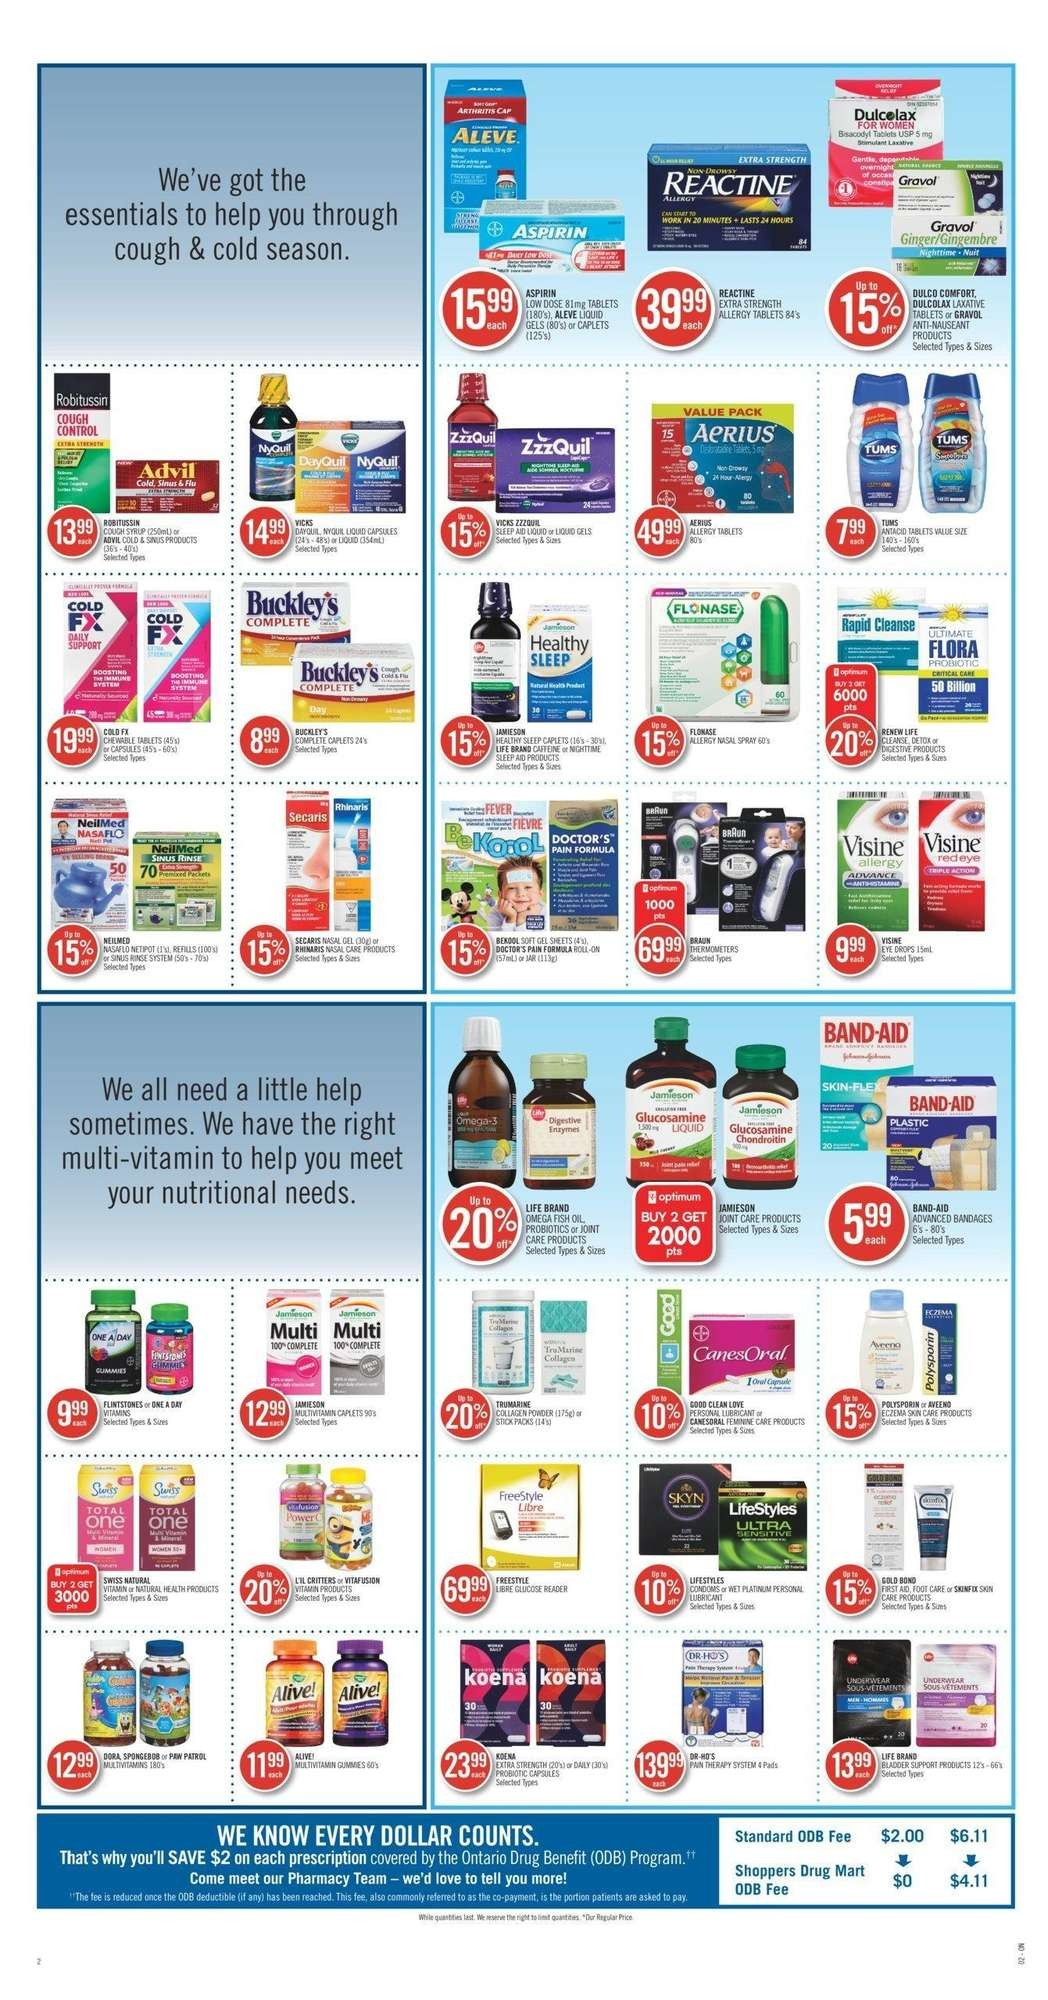 March Calendar 2019 Canada Mejores Y Más Novedosos Shoppers Drug Mart Flyer February 16 February 22 2019 Of March Calendar 2019 Canada Más Actual 2019 Fiscal Calendar Lara Expolicenciaslatam